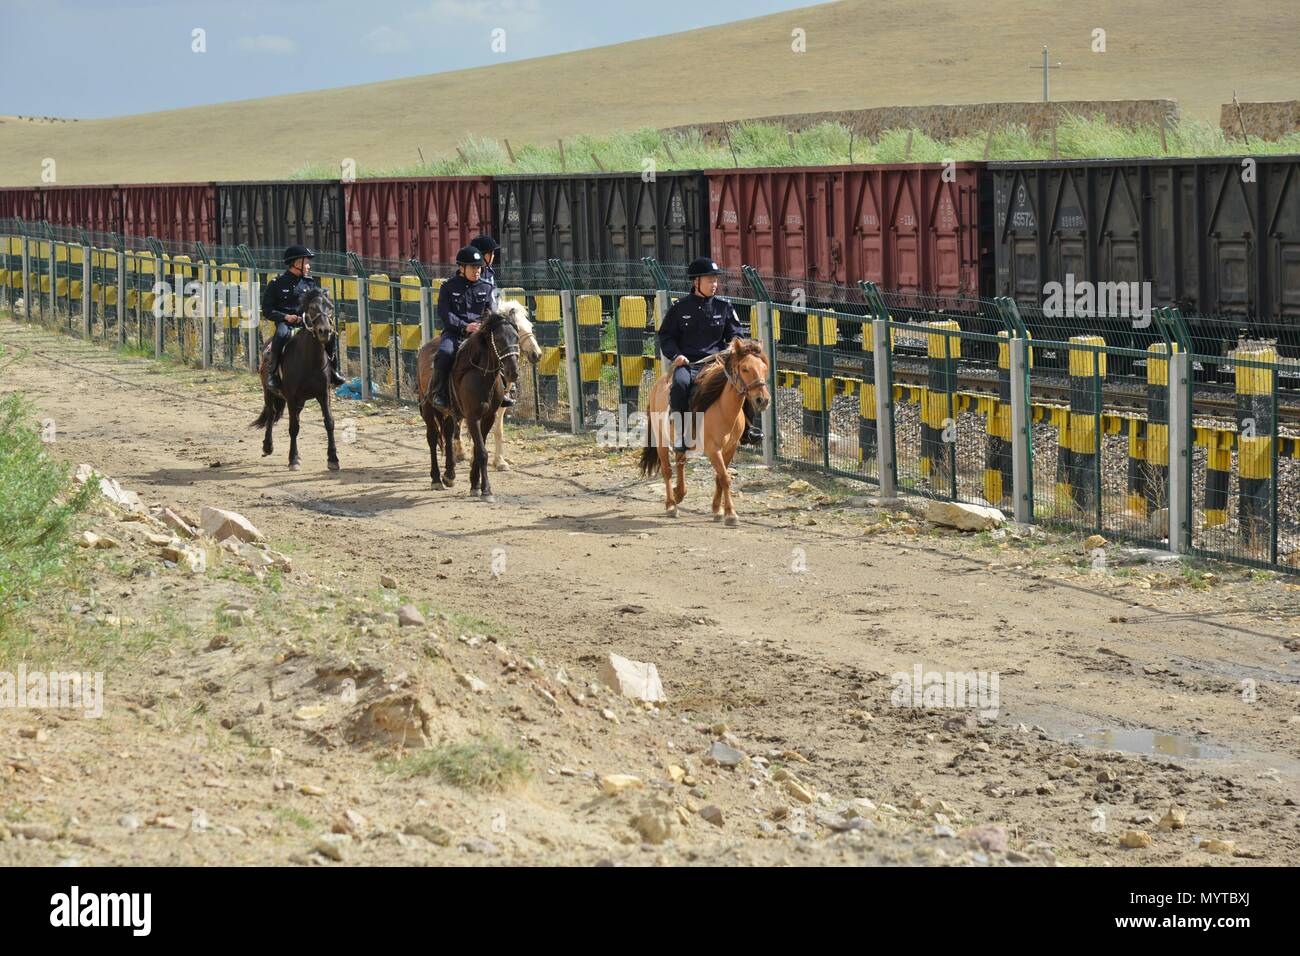 (180608) -- XILINHOT, June 8, 2018 (Xinhua) -- Mounted policemen patrol along railroad in Xilinhot, north China's Inner Mongolia Autonomous Region, June 7, 2018. In order to keep railroads in operation, mounted police in Xilinhot are busy repairing broken safety net and checking livestock intrusion while patrolling along railroads. (Xinhua/Zou Yu) (wyl) - Stock Image